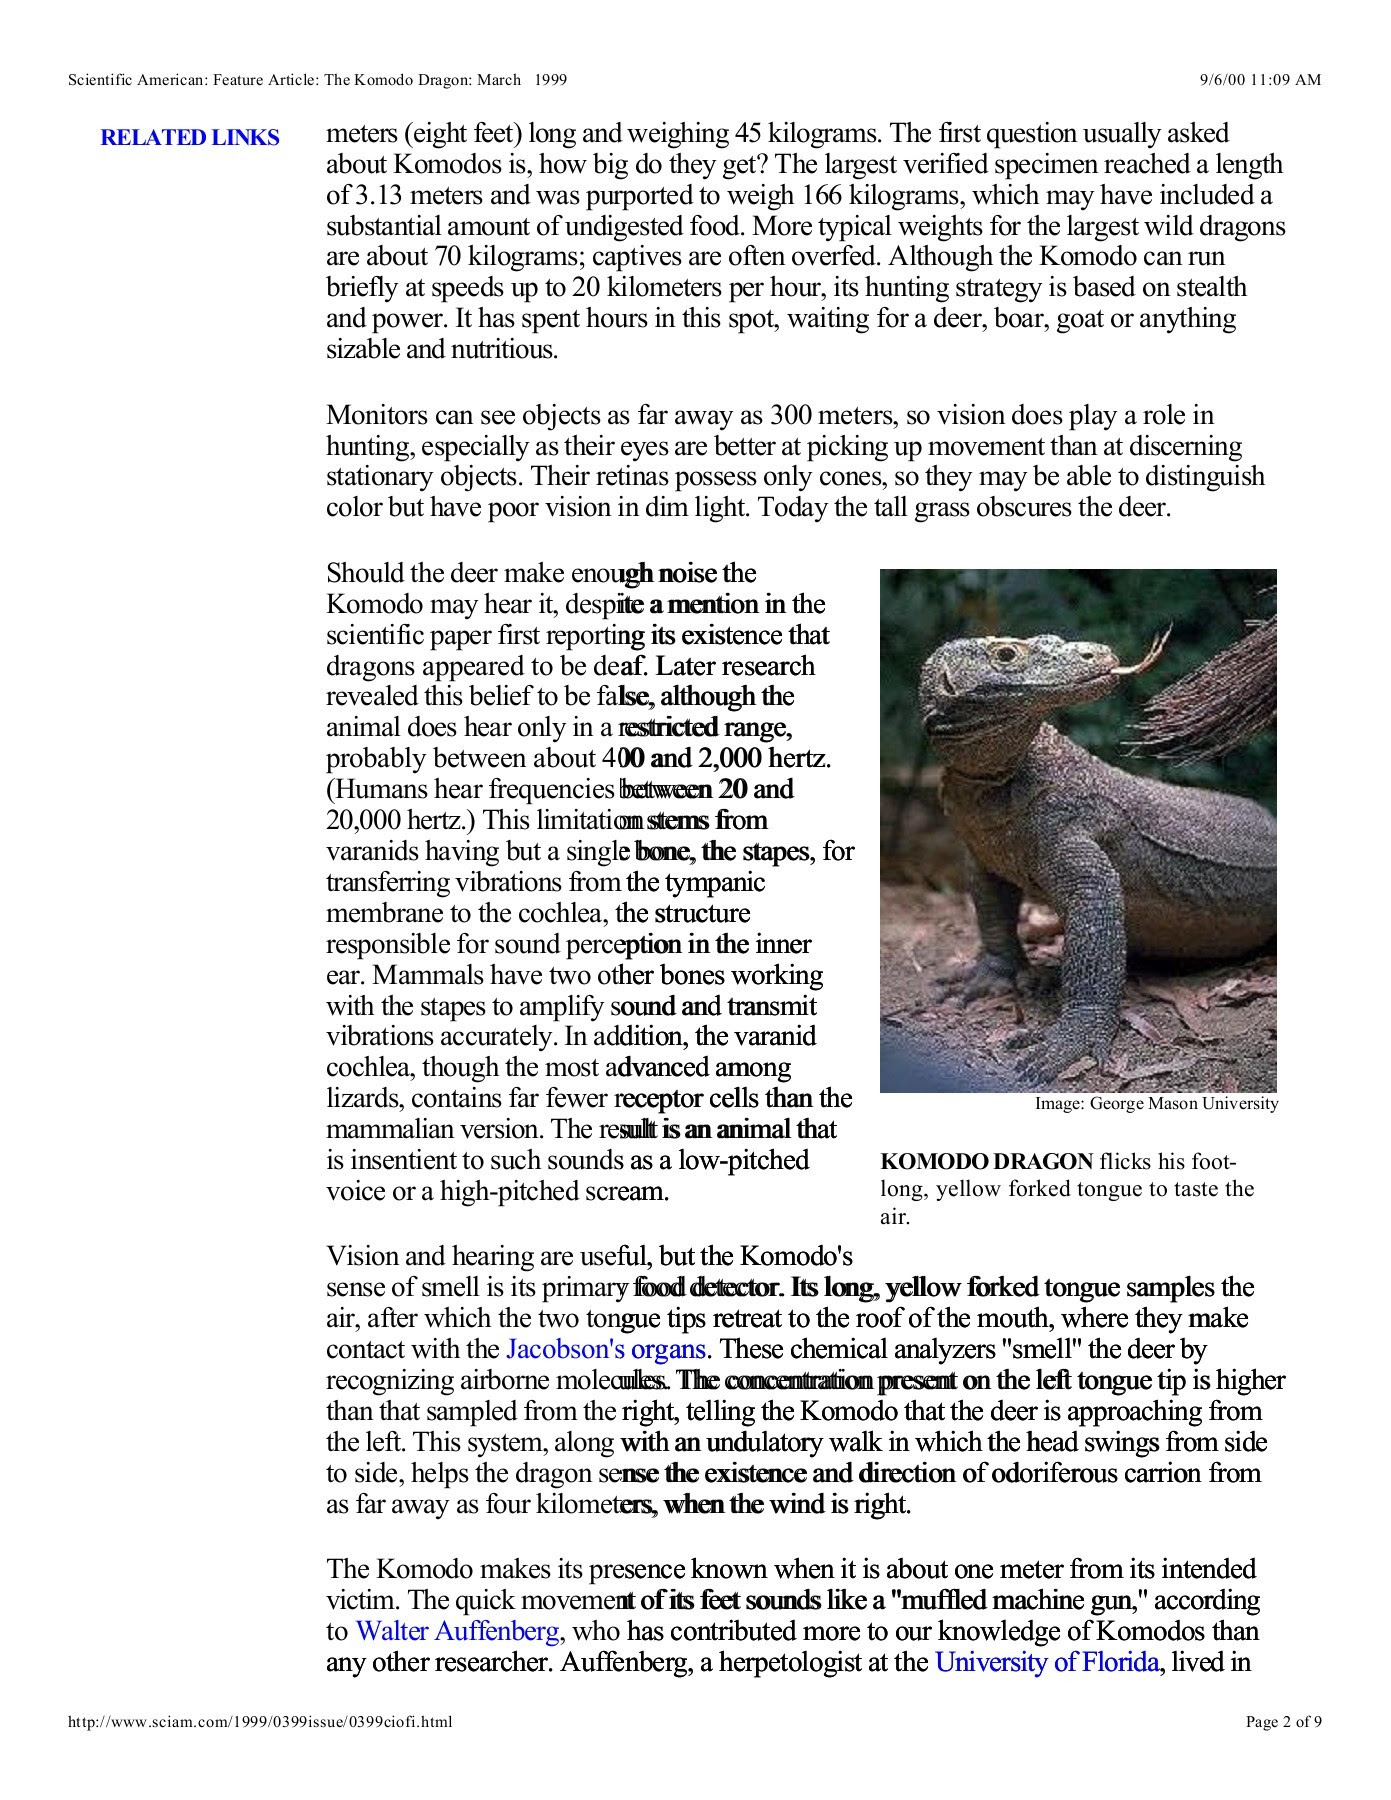 What sounds does the komodo dragon make? - Answers